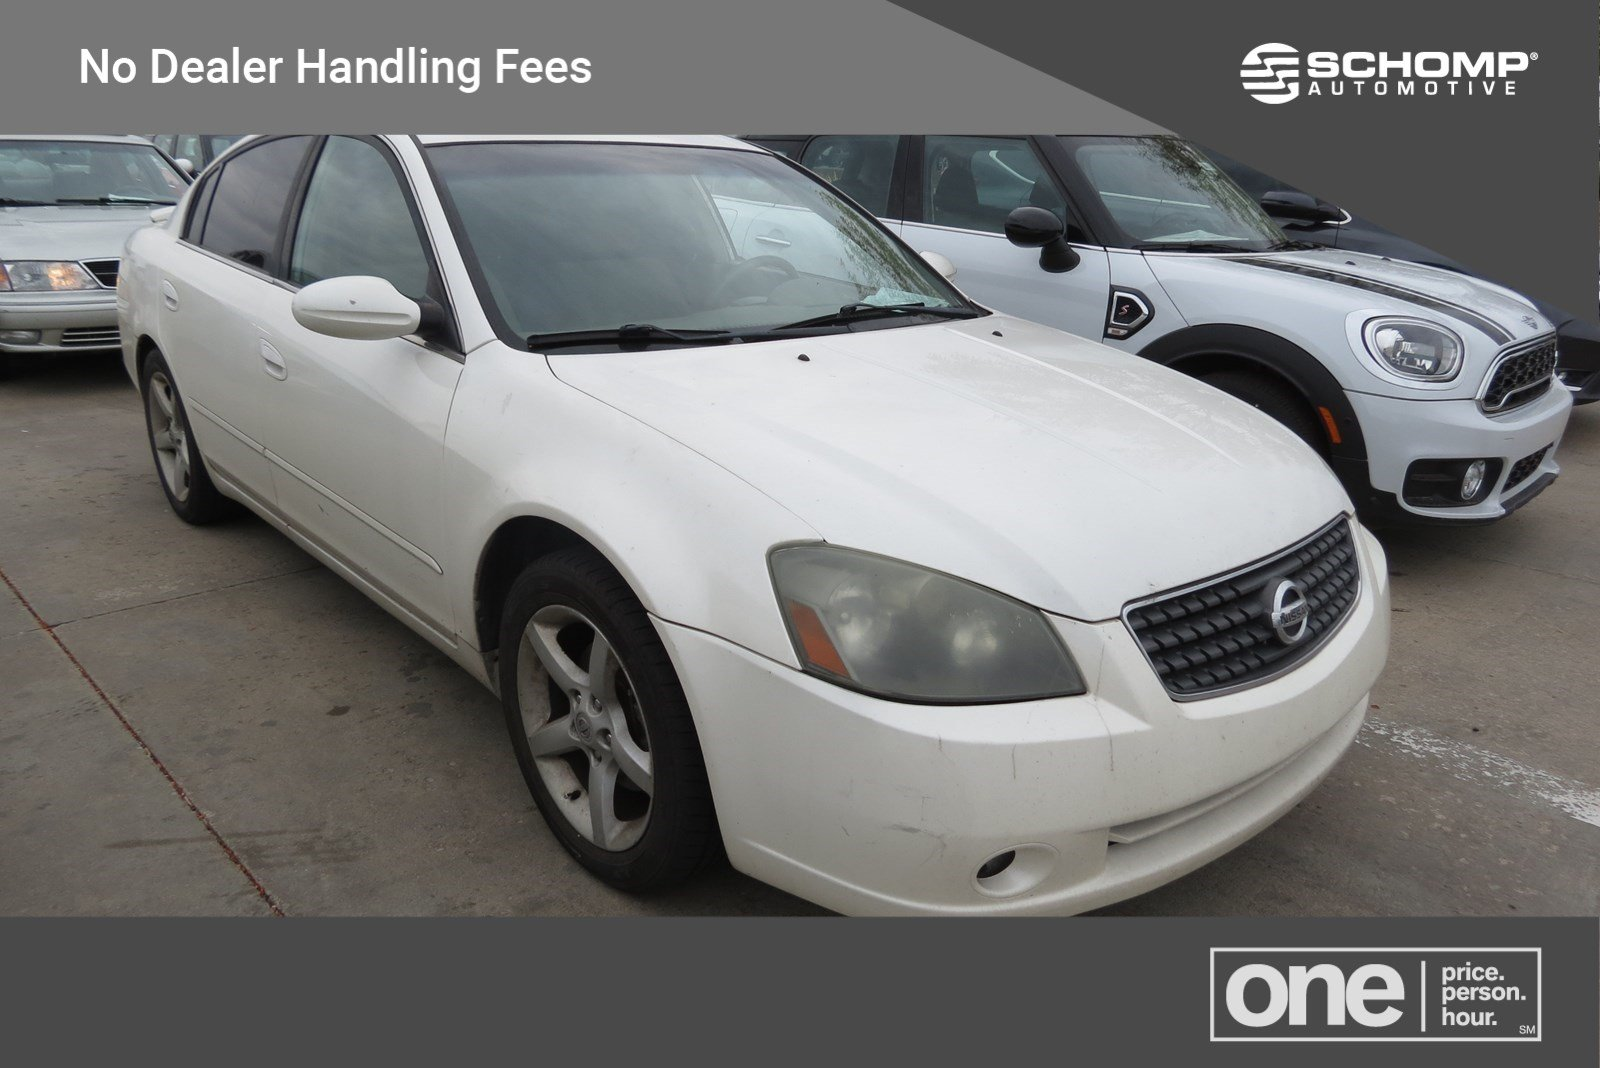 Superb Pre Owned 2006 Nissan Altima 3.5 SE